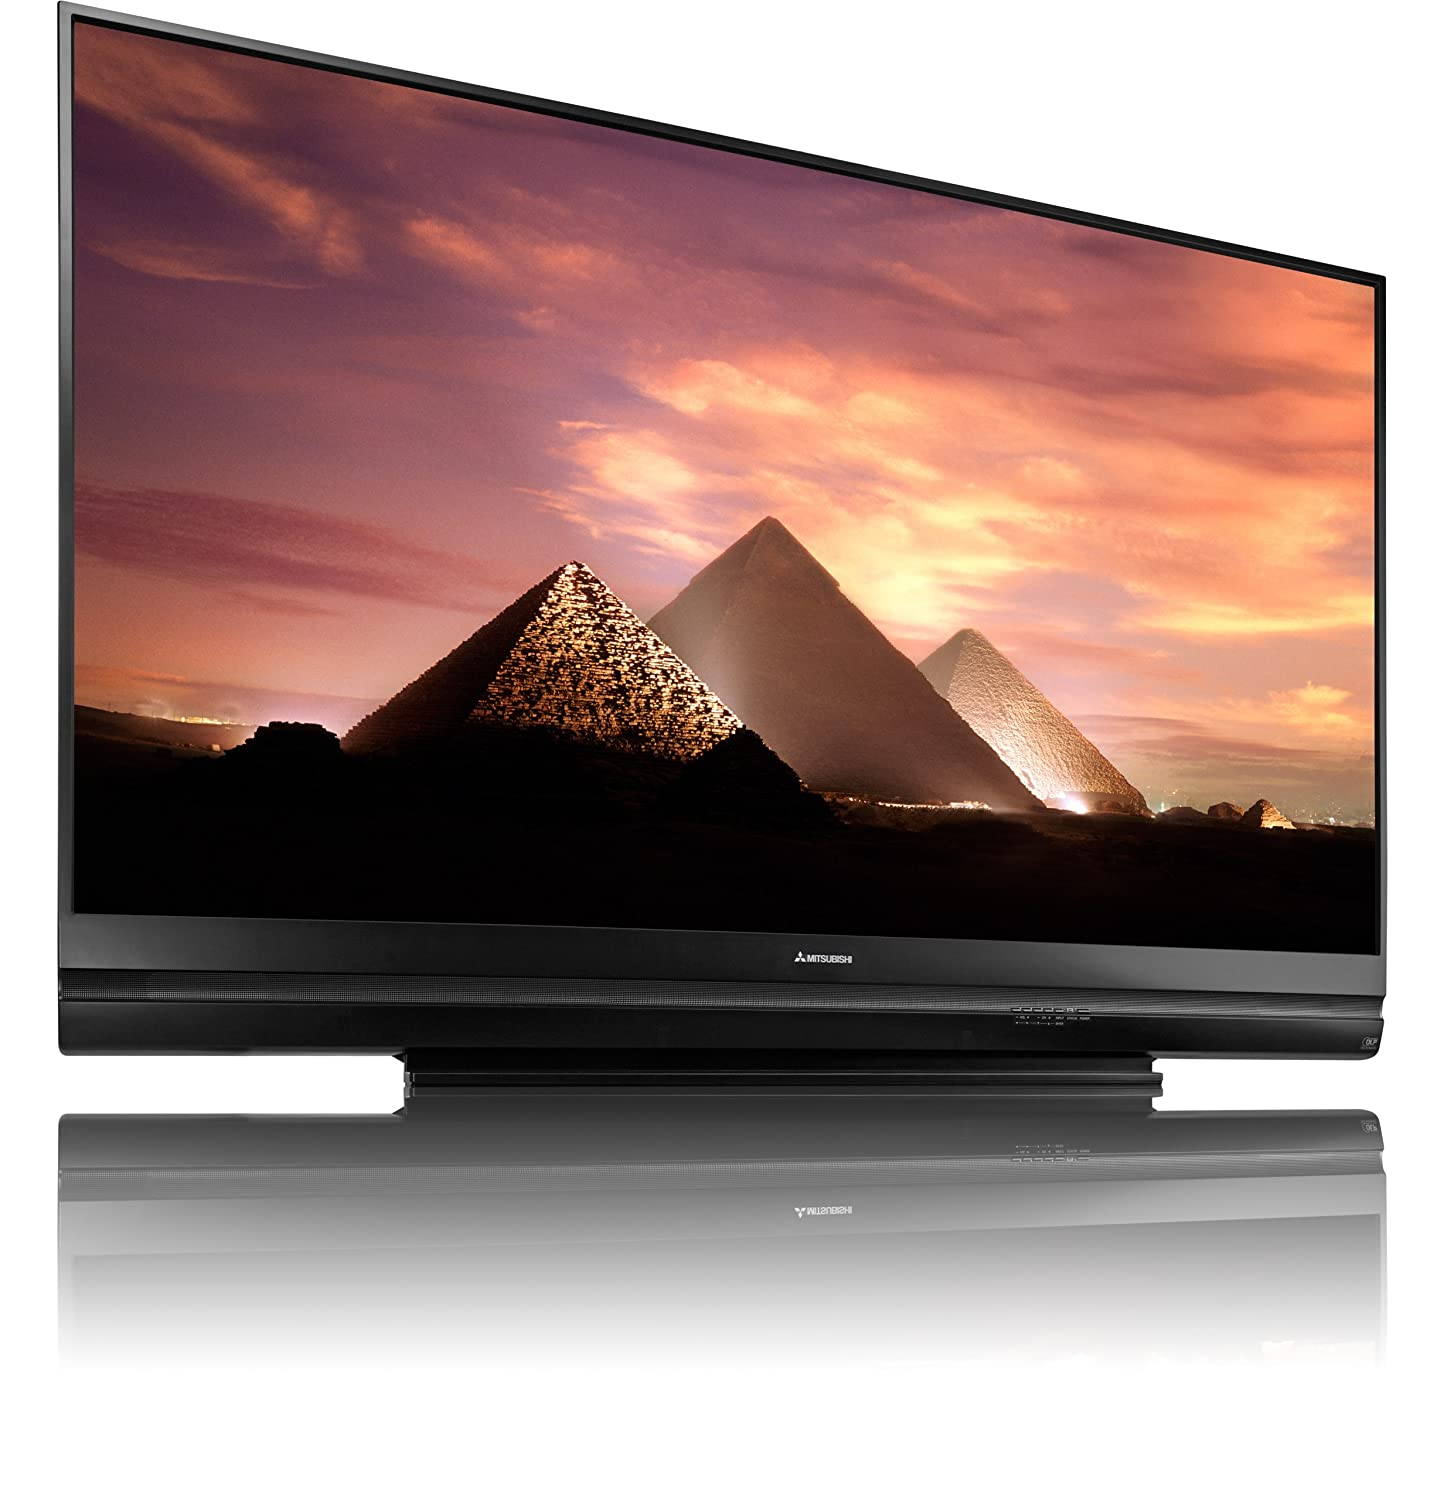 91GLWYTvPzL._SL1500_ amazon com mitsubishi wd73642 73 inch 3d dlp home cinema hdtv  at cos-gaming.co